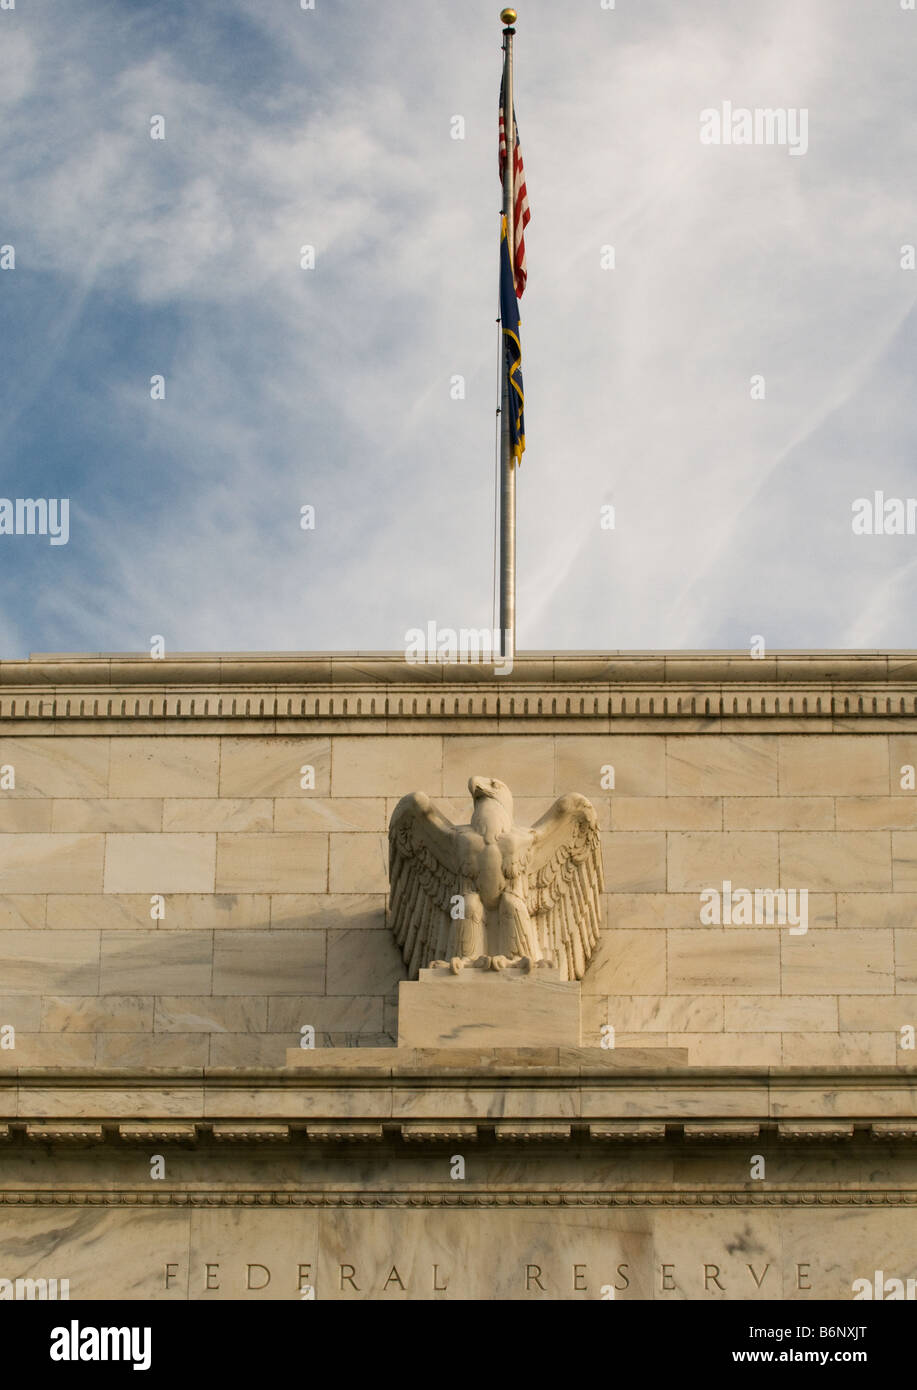 US flag atop the Federal Reserve Building, Washington DC (detail) with American flag - Stock Image